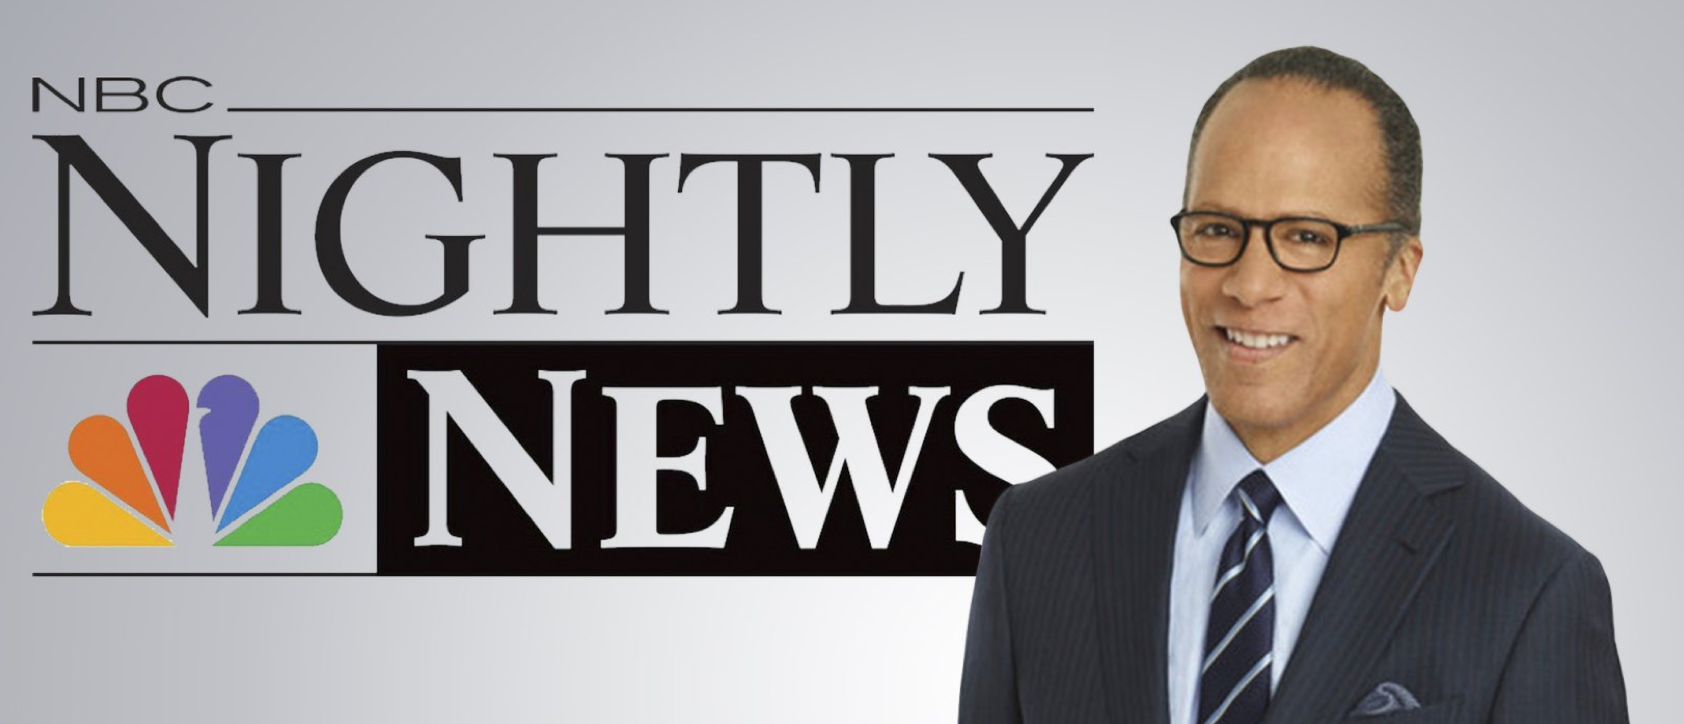 http://www.tvweek.com/wp-content/uploads/2015/06/nbc-nightly-news-lester-holt.png